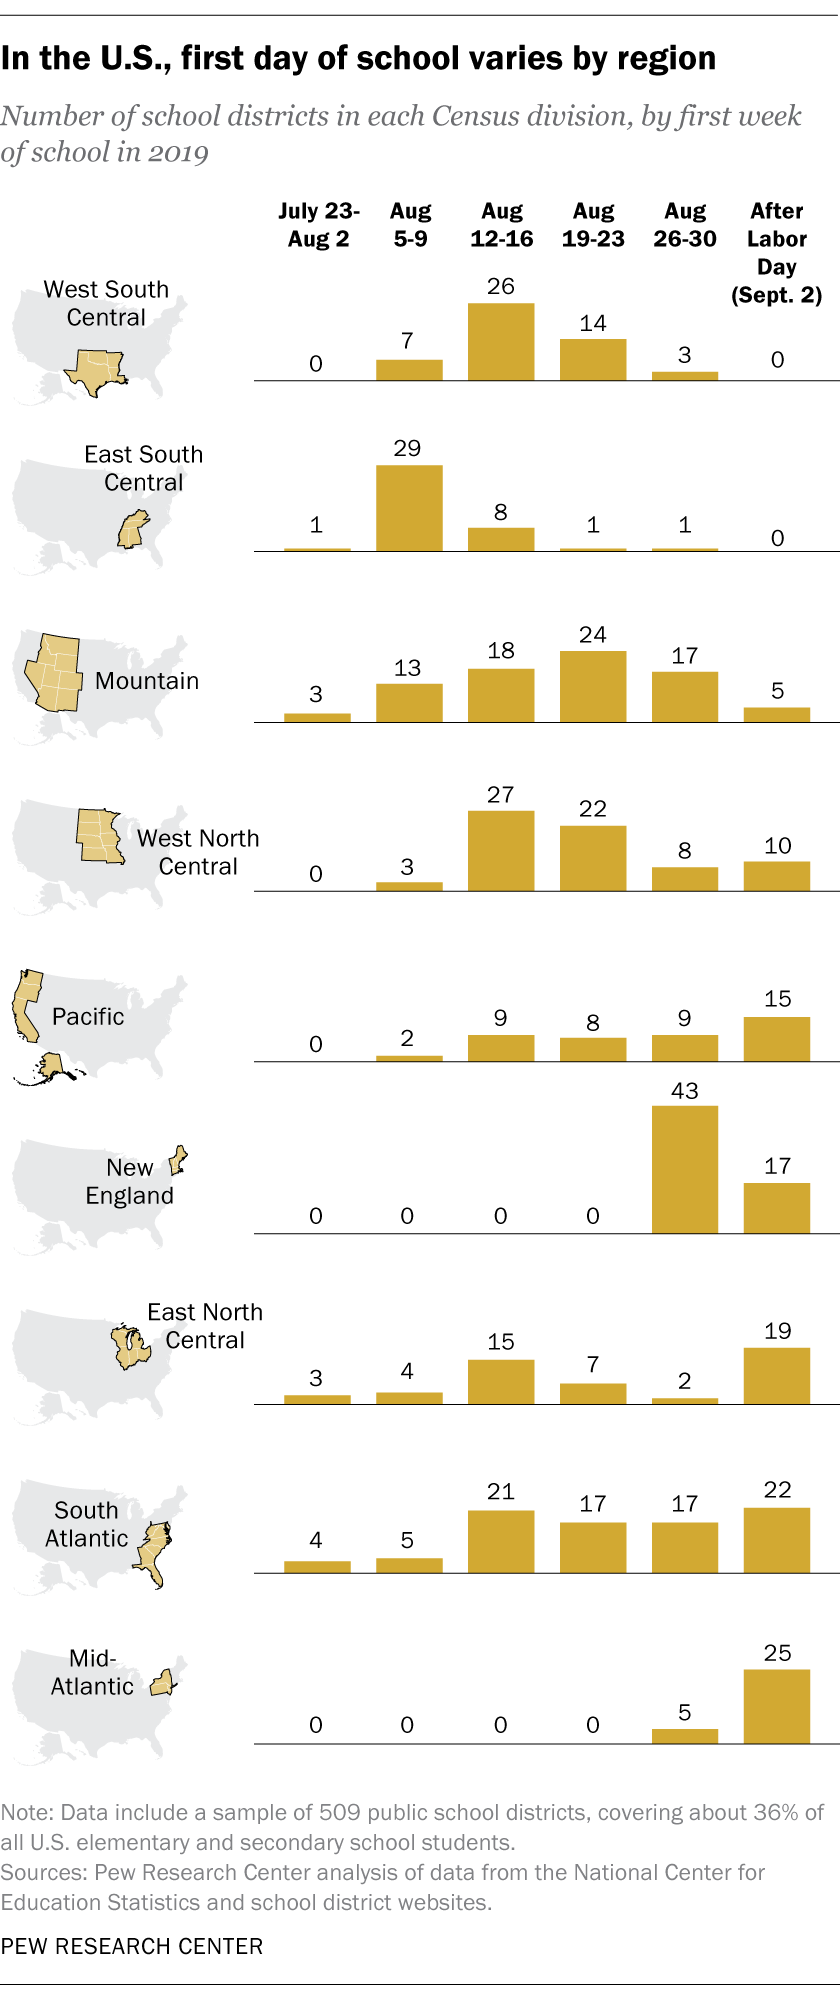 In the U.S., first day of school varies by region